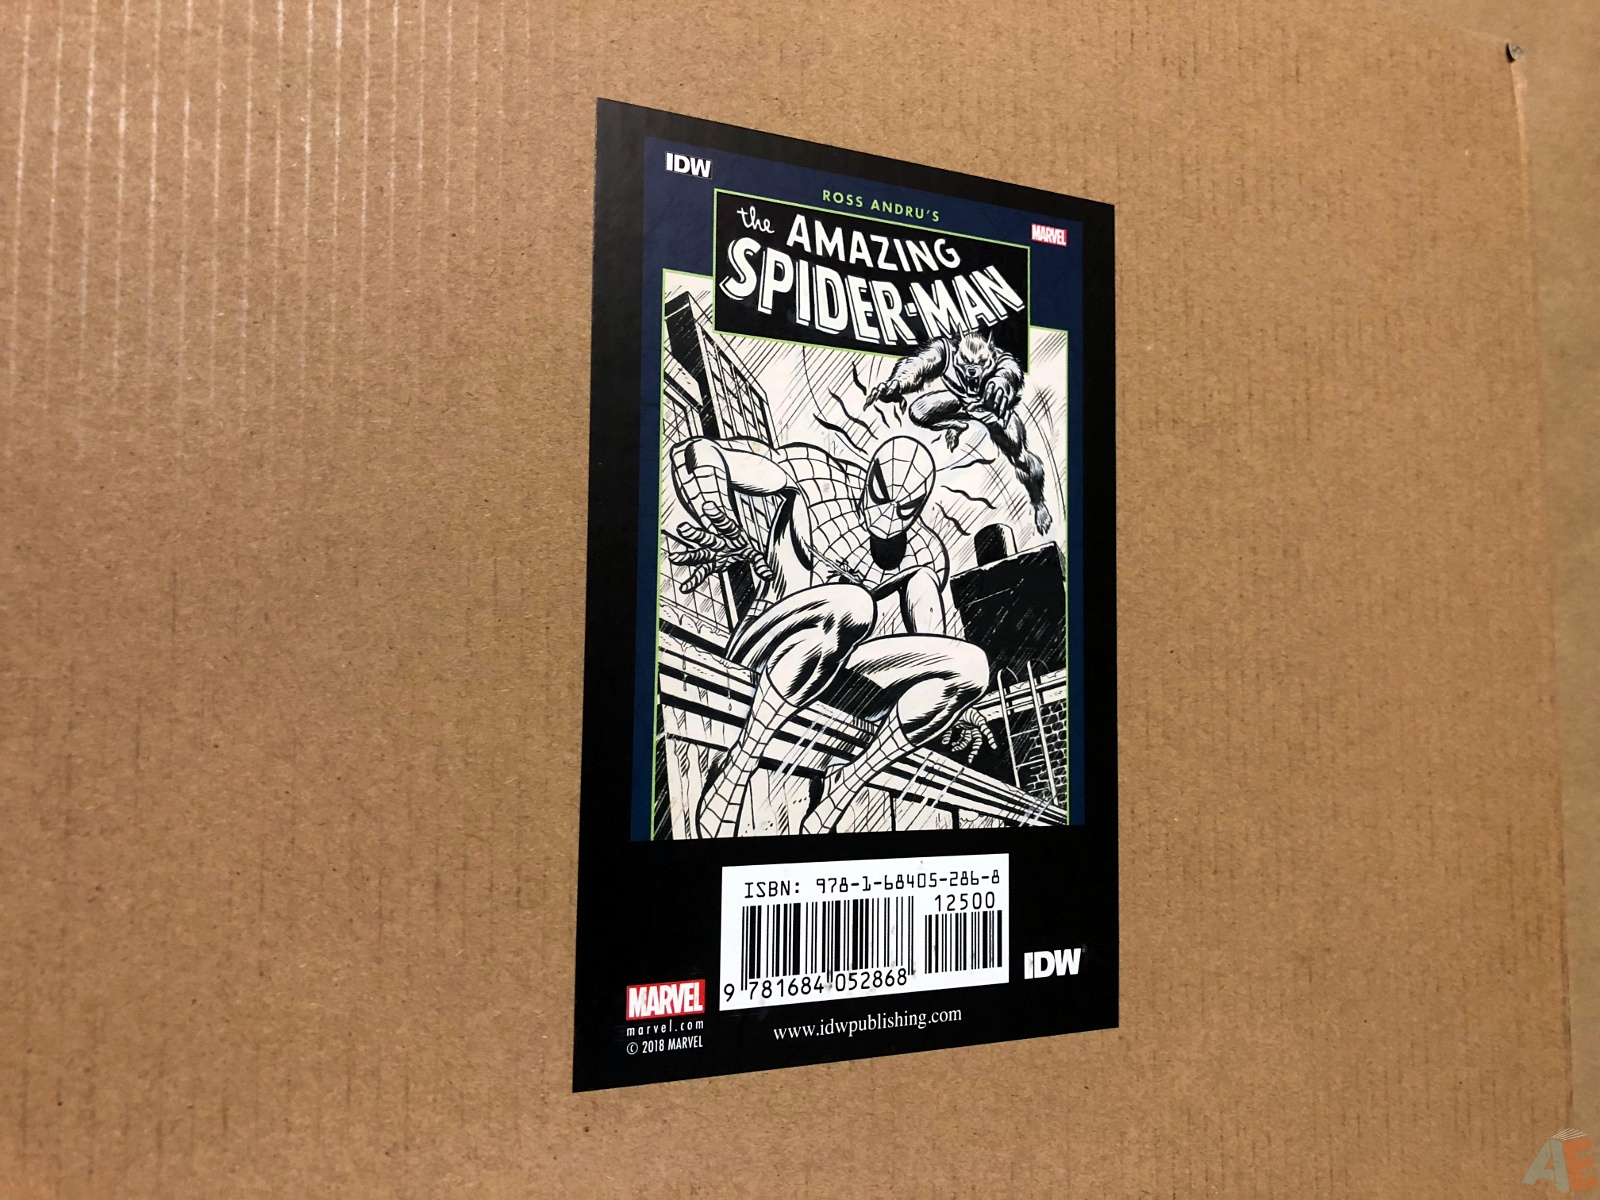 Ross Andru's The Amazing Spider-Man Artist's Edition 50